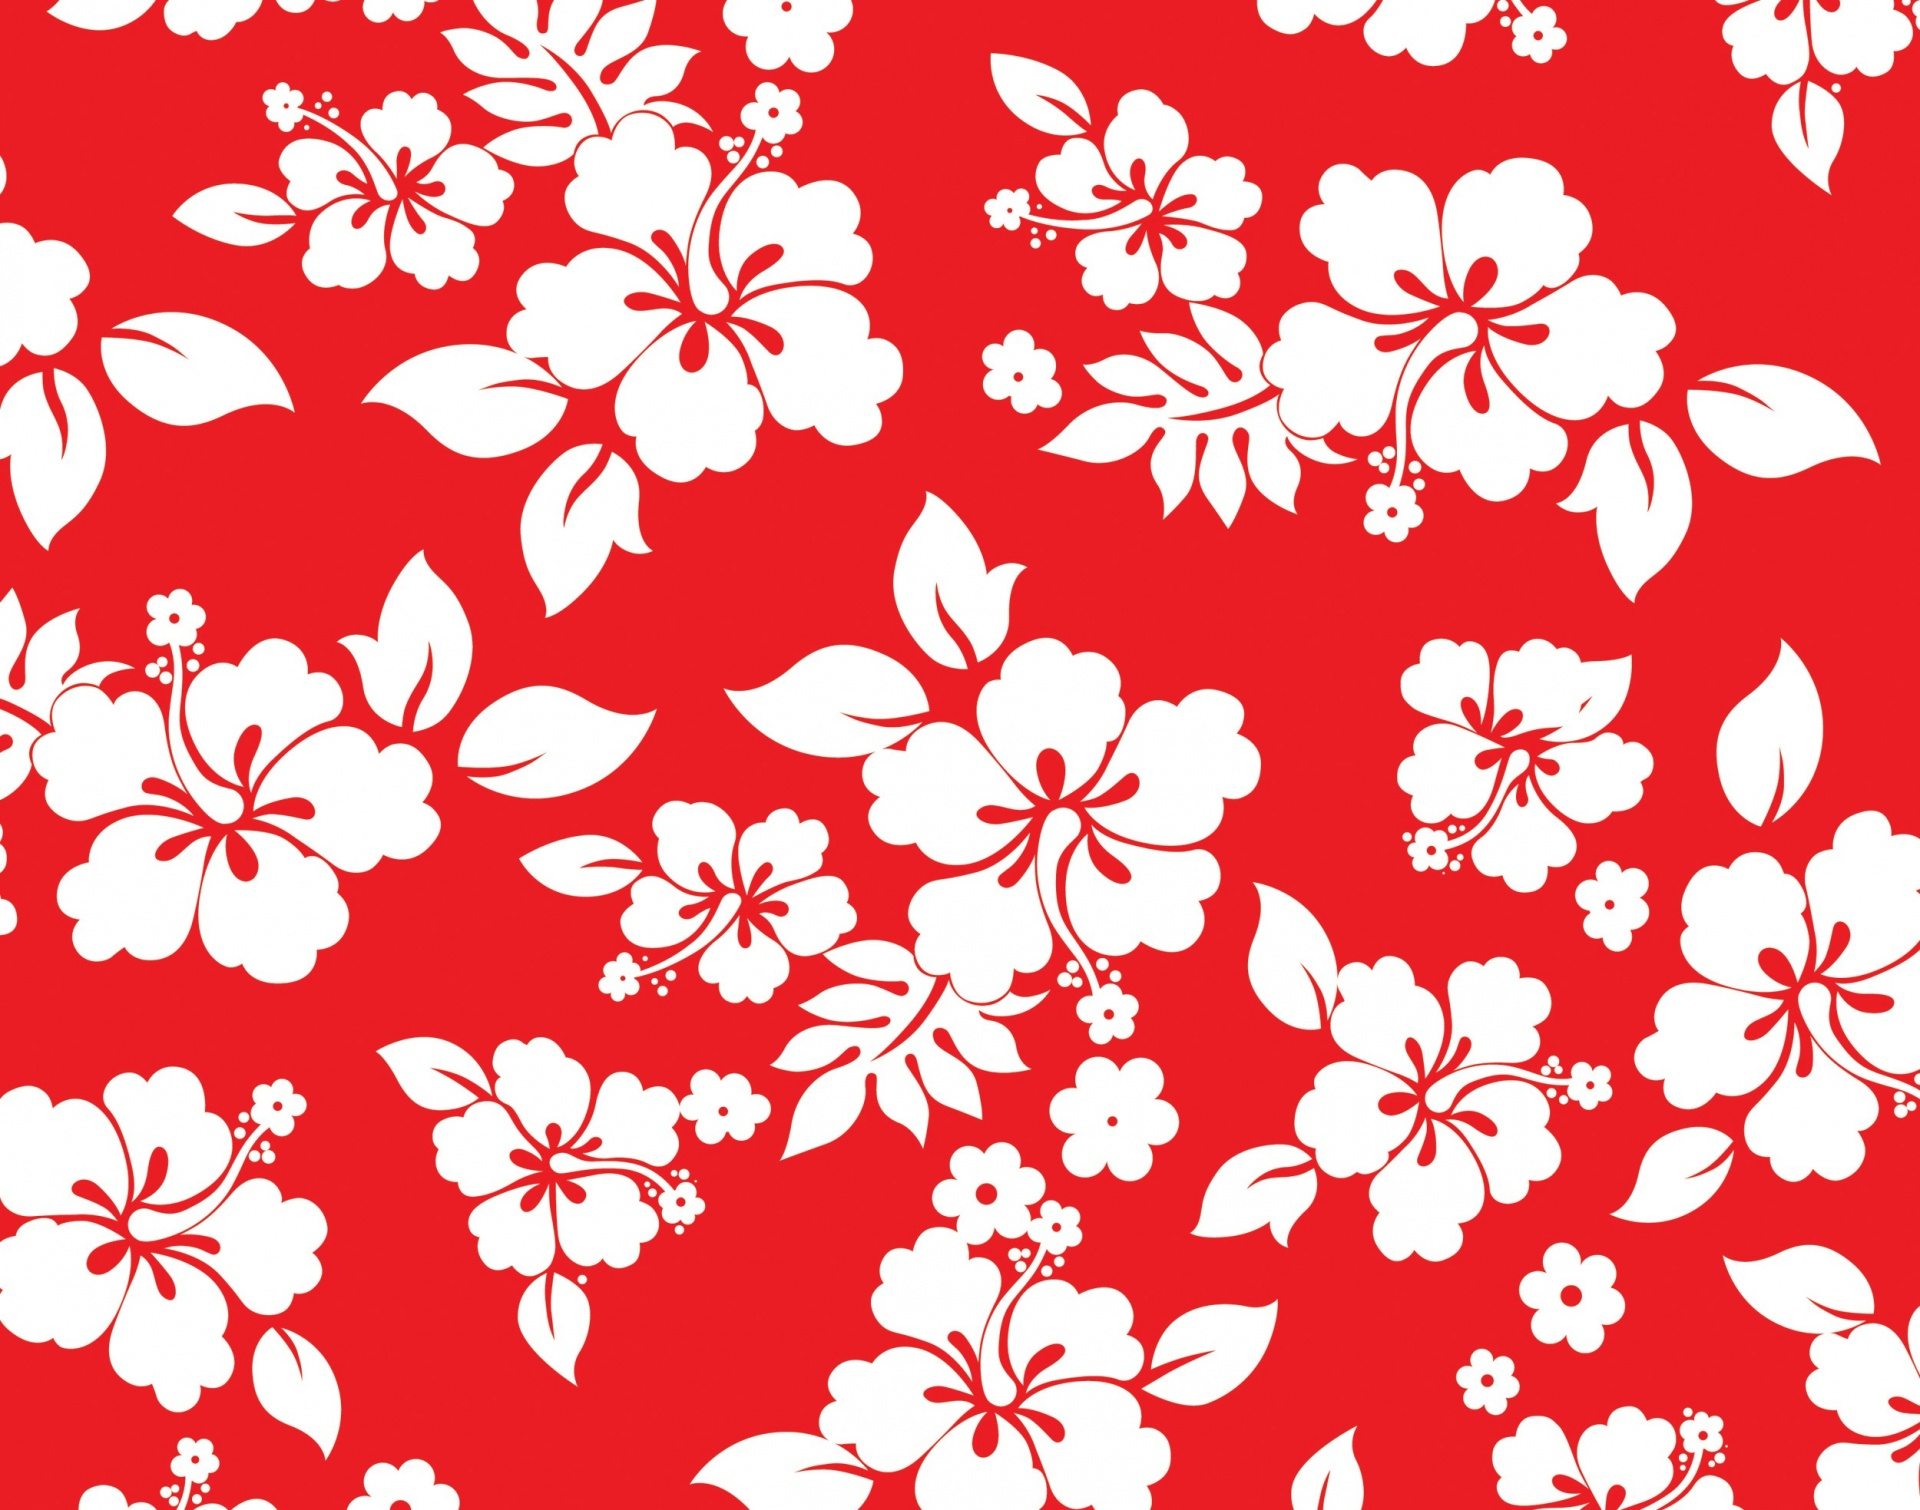 Hibiscus Flower Floral Background Backdrop Free Image From